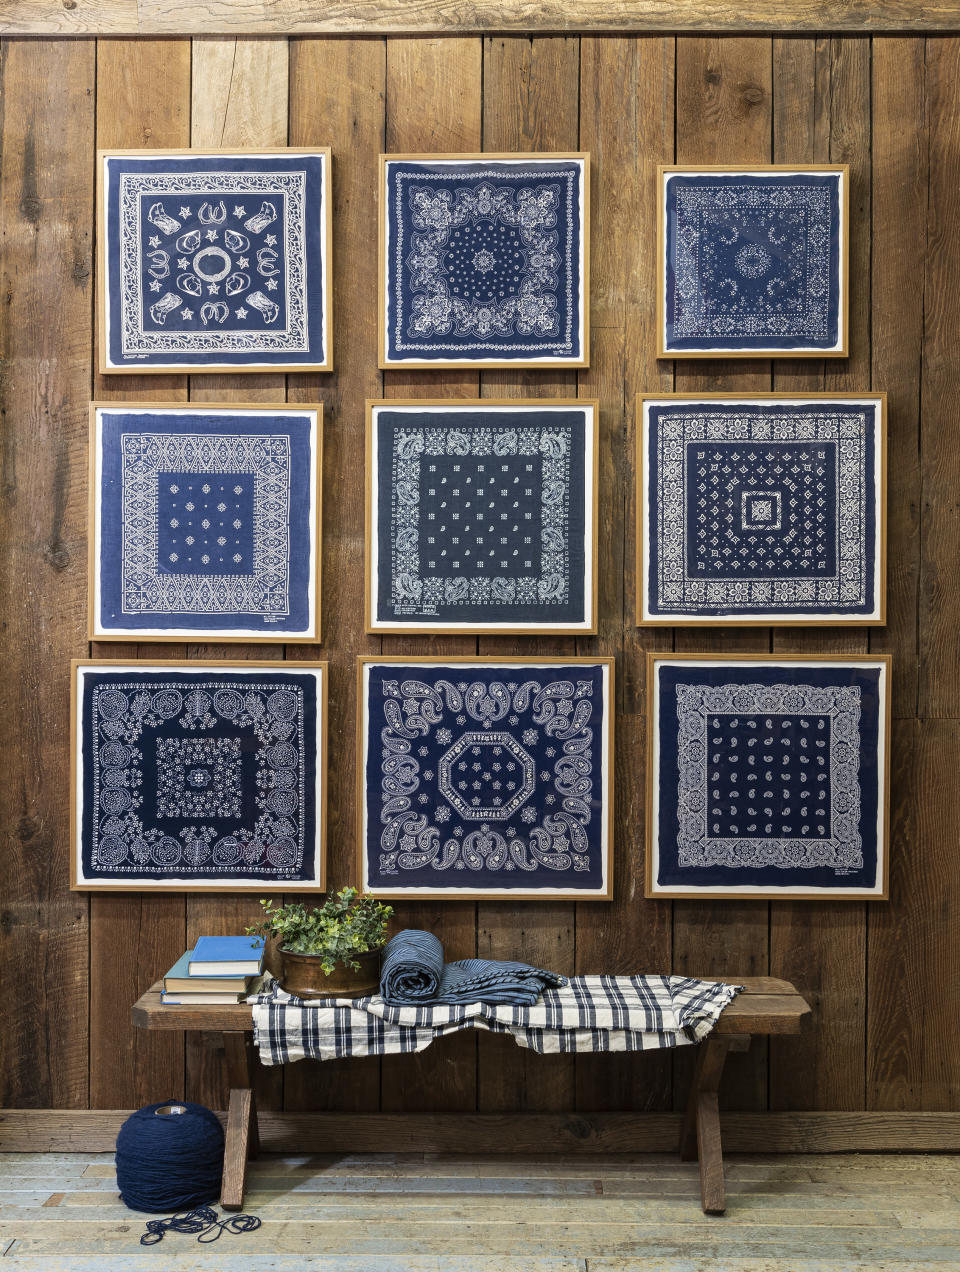 This image released by Portland Oregon-based interior designer Max Humphrey shows framed bandanas that serve as decorative wall art. (Christopher Dibble via AP)